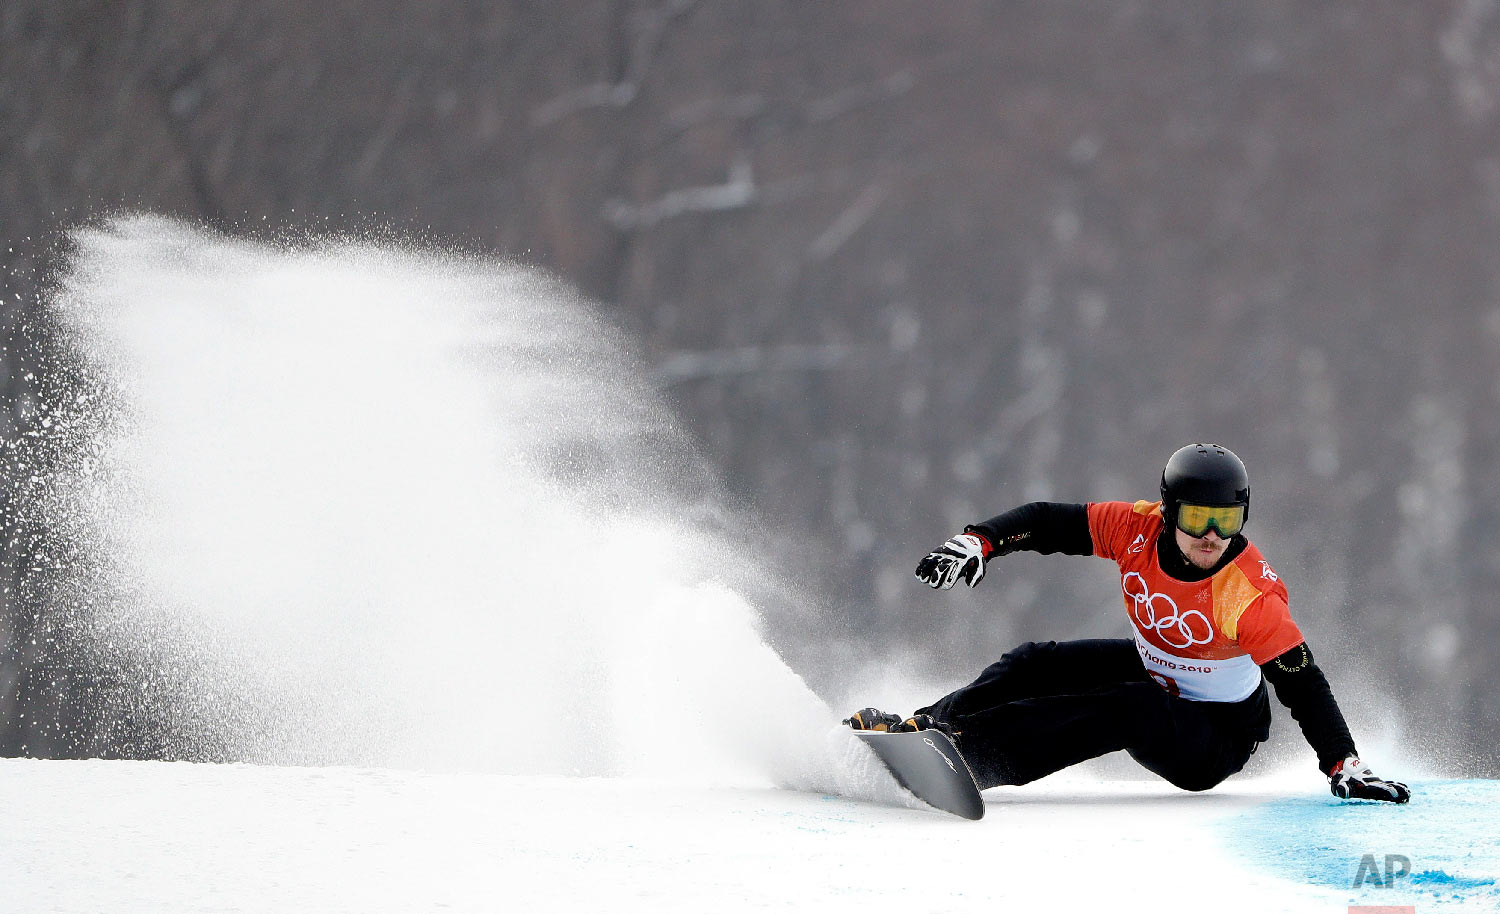 Russian athlete Vic Wild runs the course during the men's parallel giant slalom qualification run at Phoenix Snow Park at the 2018 Winter Olympics in Pyeongchang, South Korea, Saturday, Feb. 24, 2018. (AP Photo/Gregory Bull)